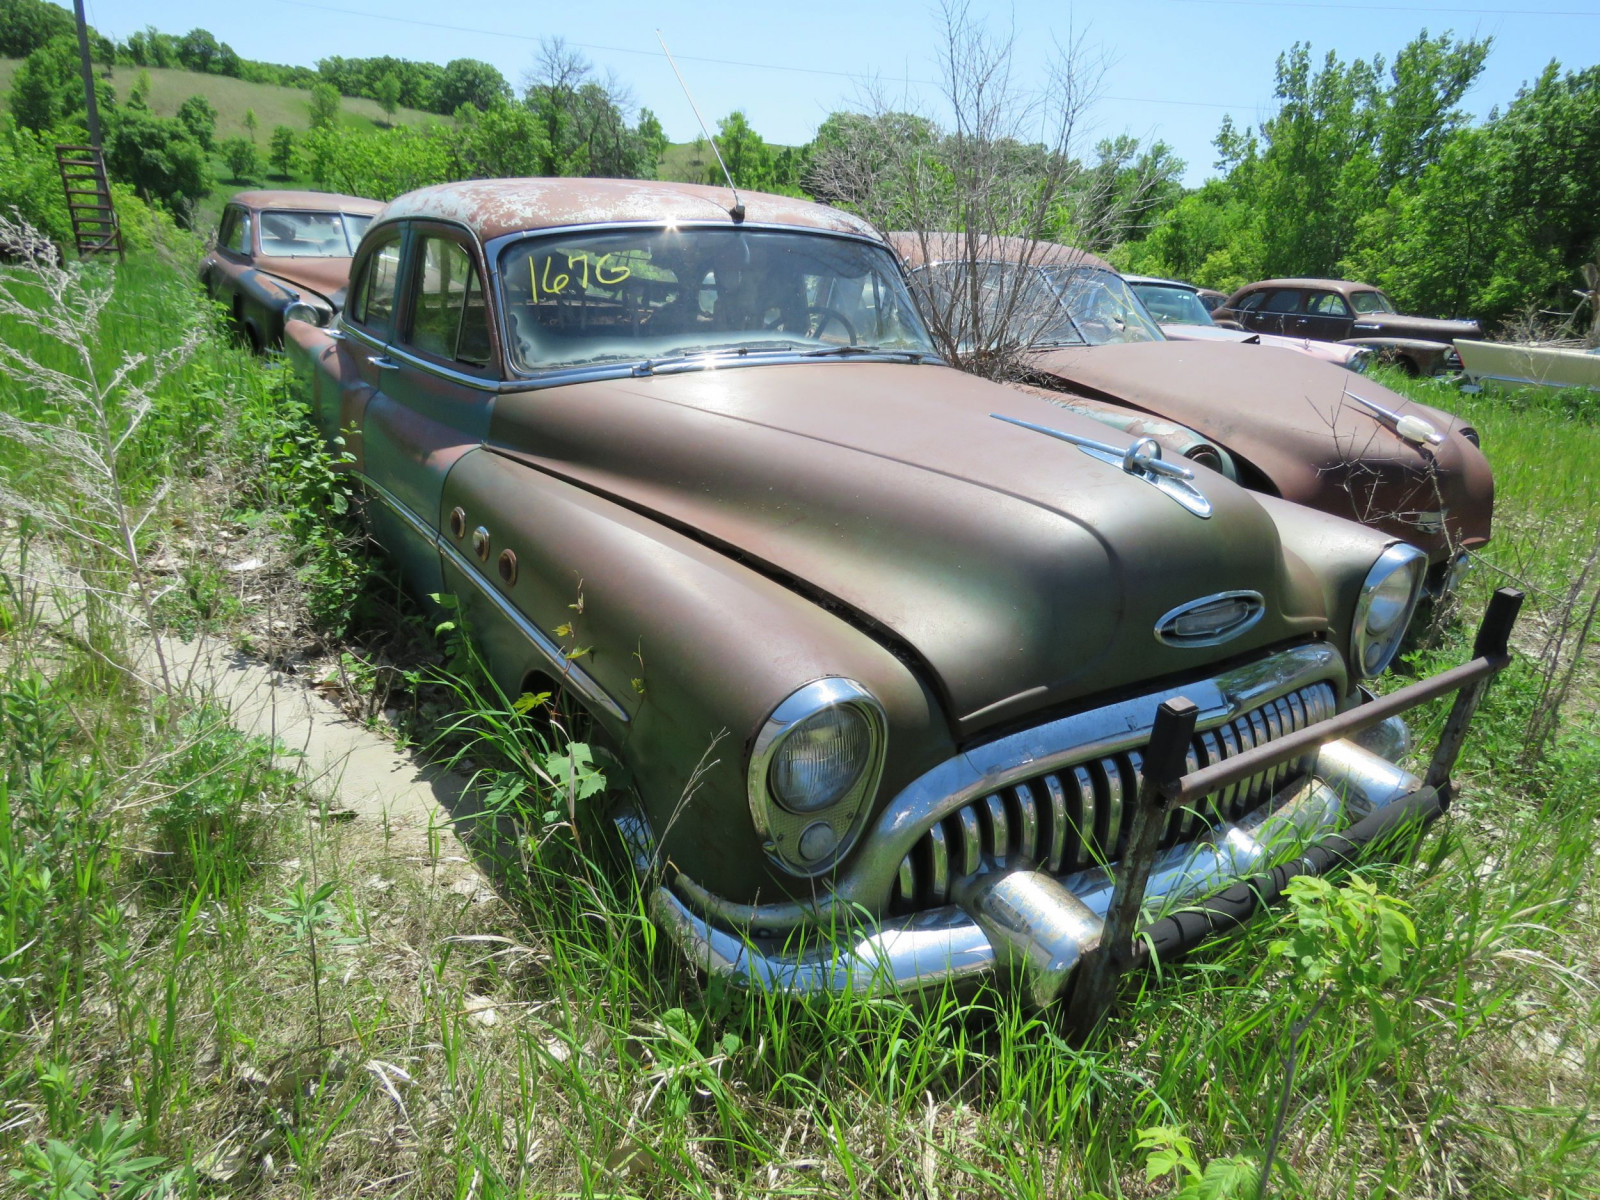 Buick 4dr Sedan for Project or parts - Image 1